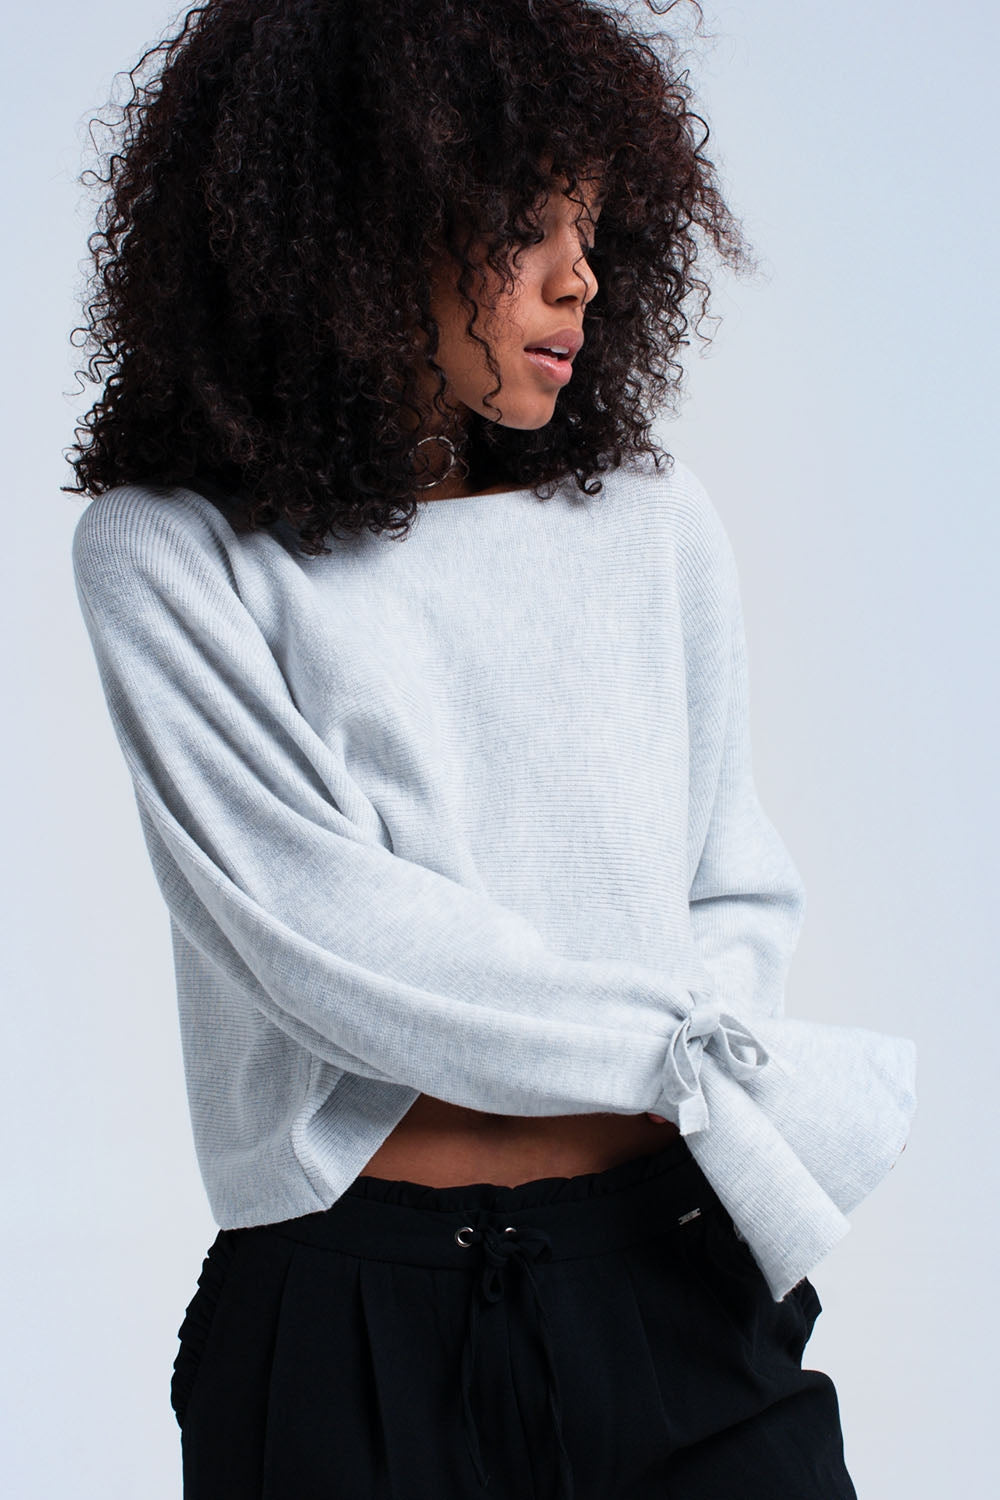 Gray Crop Sweater With Ribbons-Women - Apparel - Sweaters - Pull Over-Product Details Gray crop ribbed sweater in oversized fit. It has a boat neck and 3/4 sleeves with ribbons that you can tie. Soft woven fabric.-Keyomi-Sook